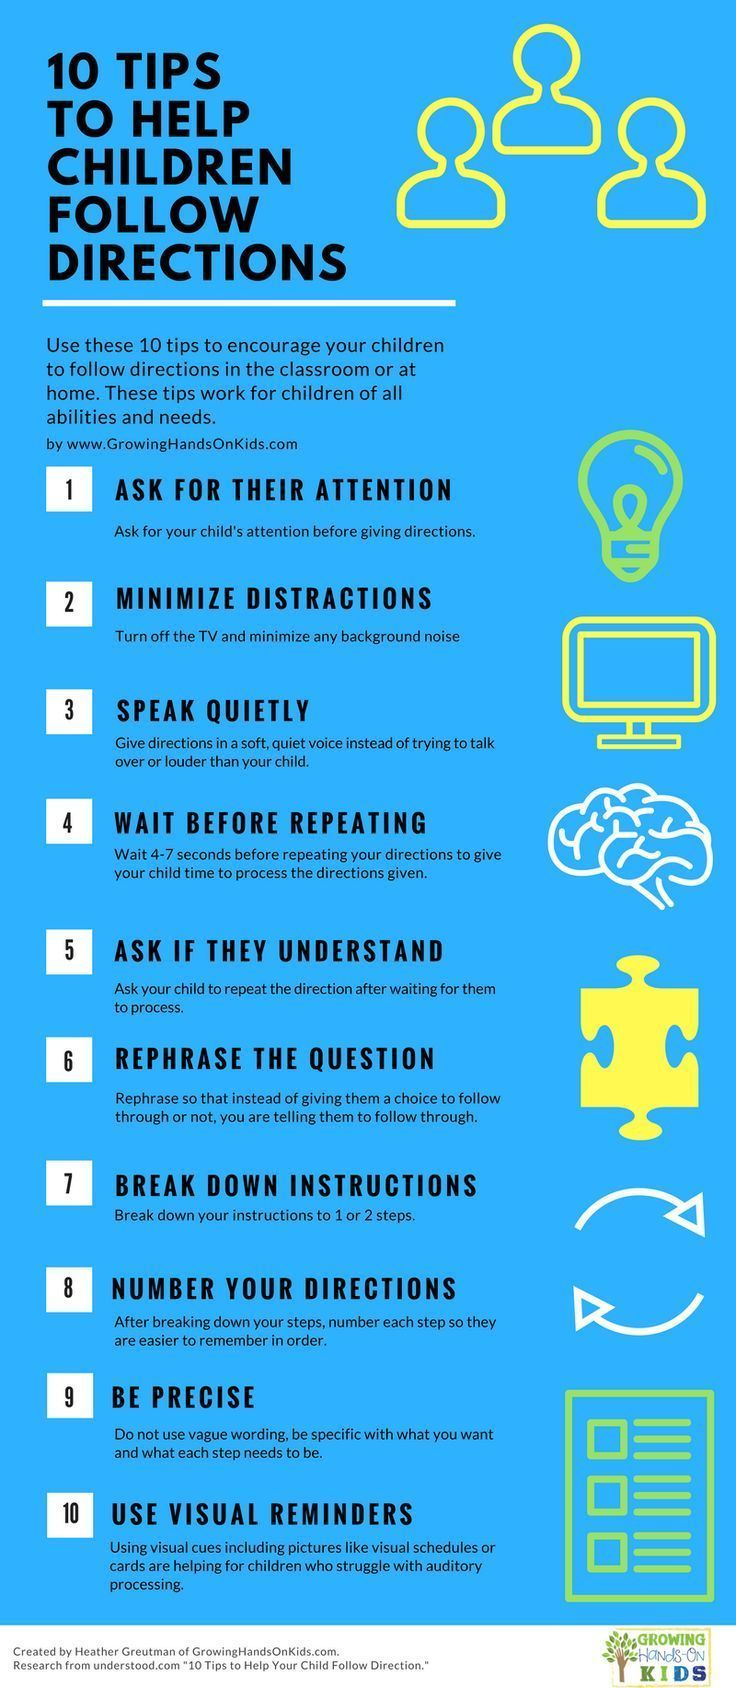 10 tips for teaching children how to follow directions in the classroom or home. Love these parenting tips for how to get kids to listen to instructions!